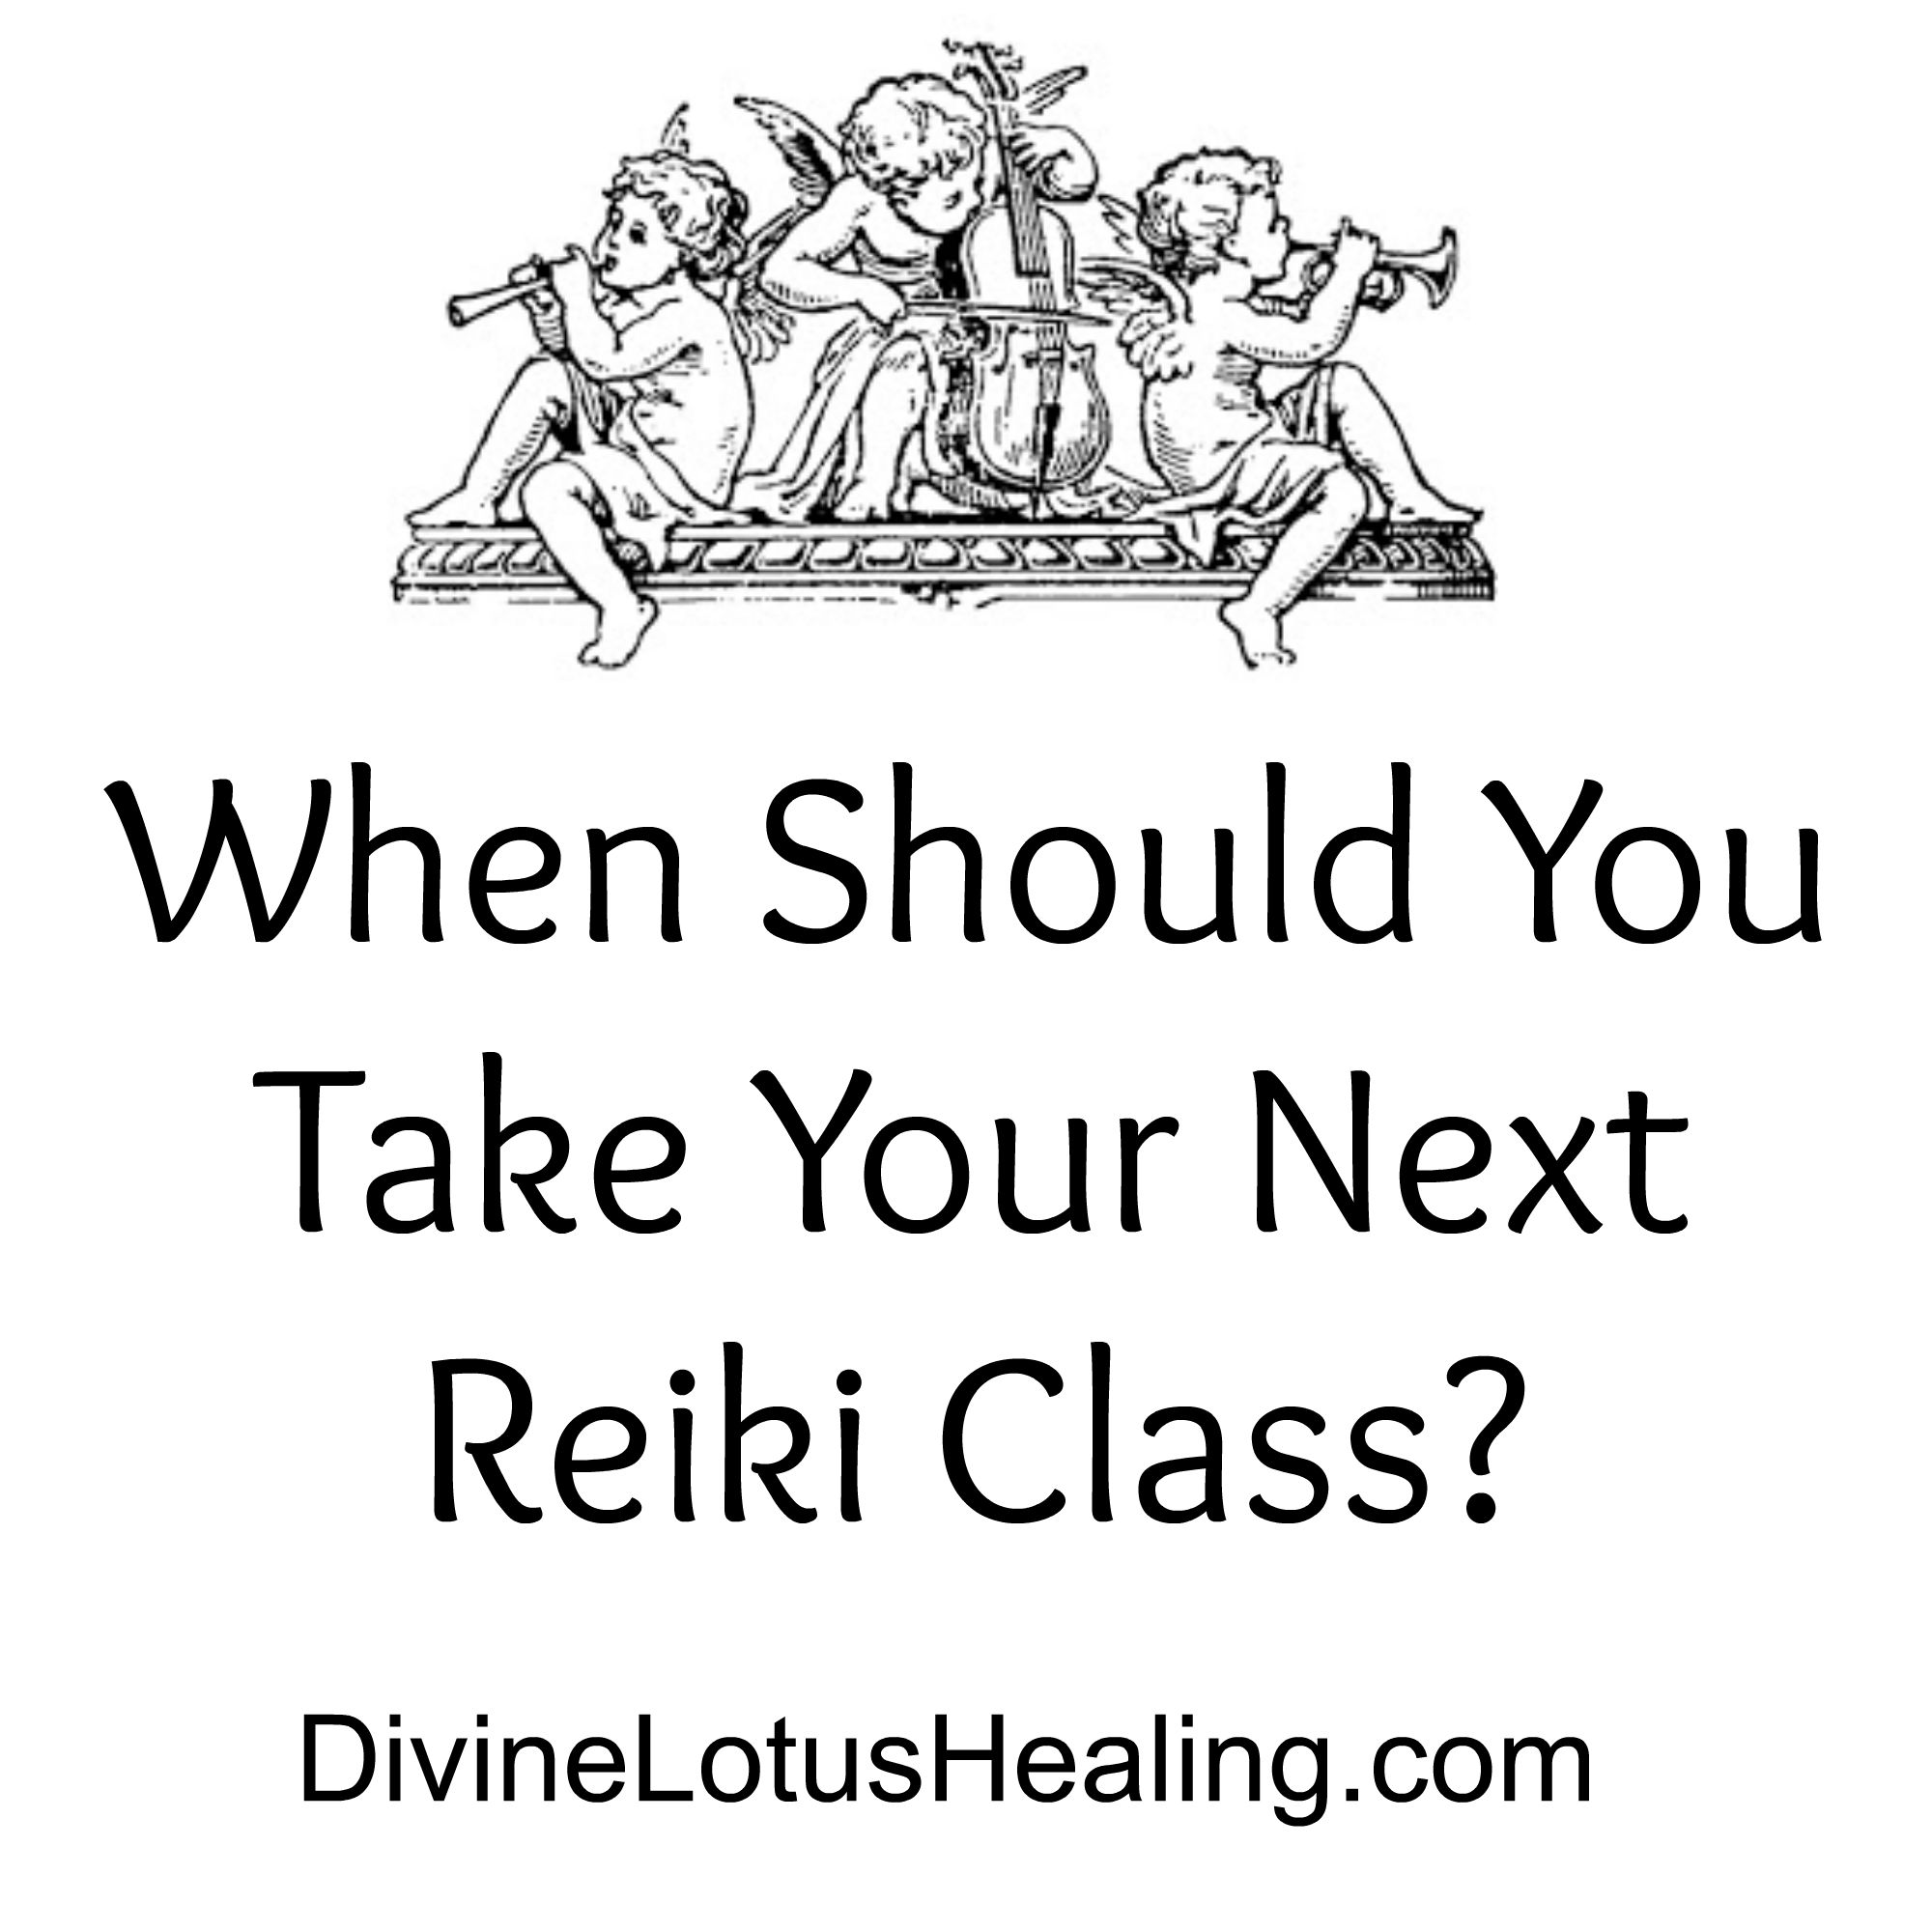 Divine Lotus Healing | When Should You Take Your Next Reiki Class